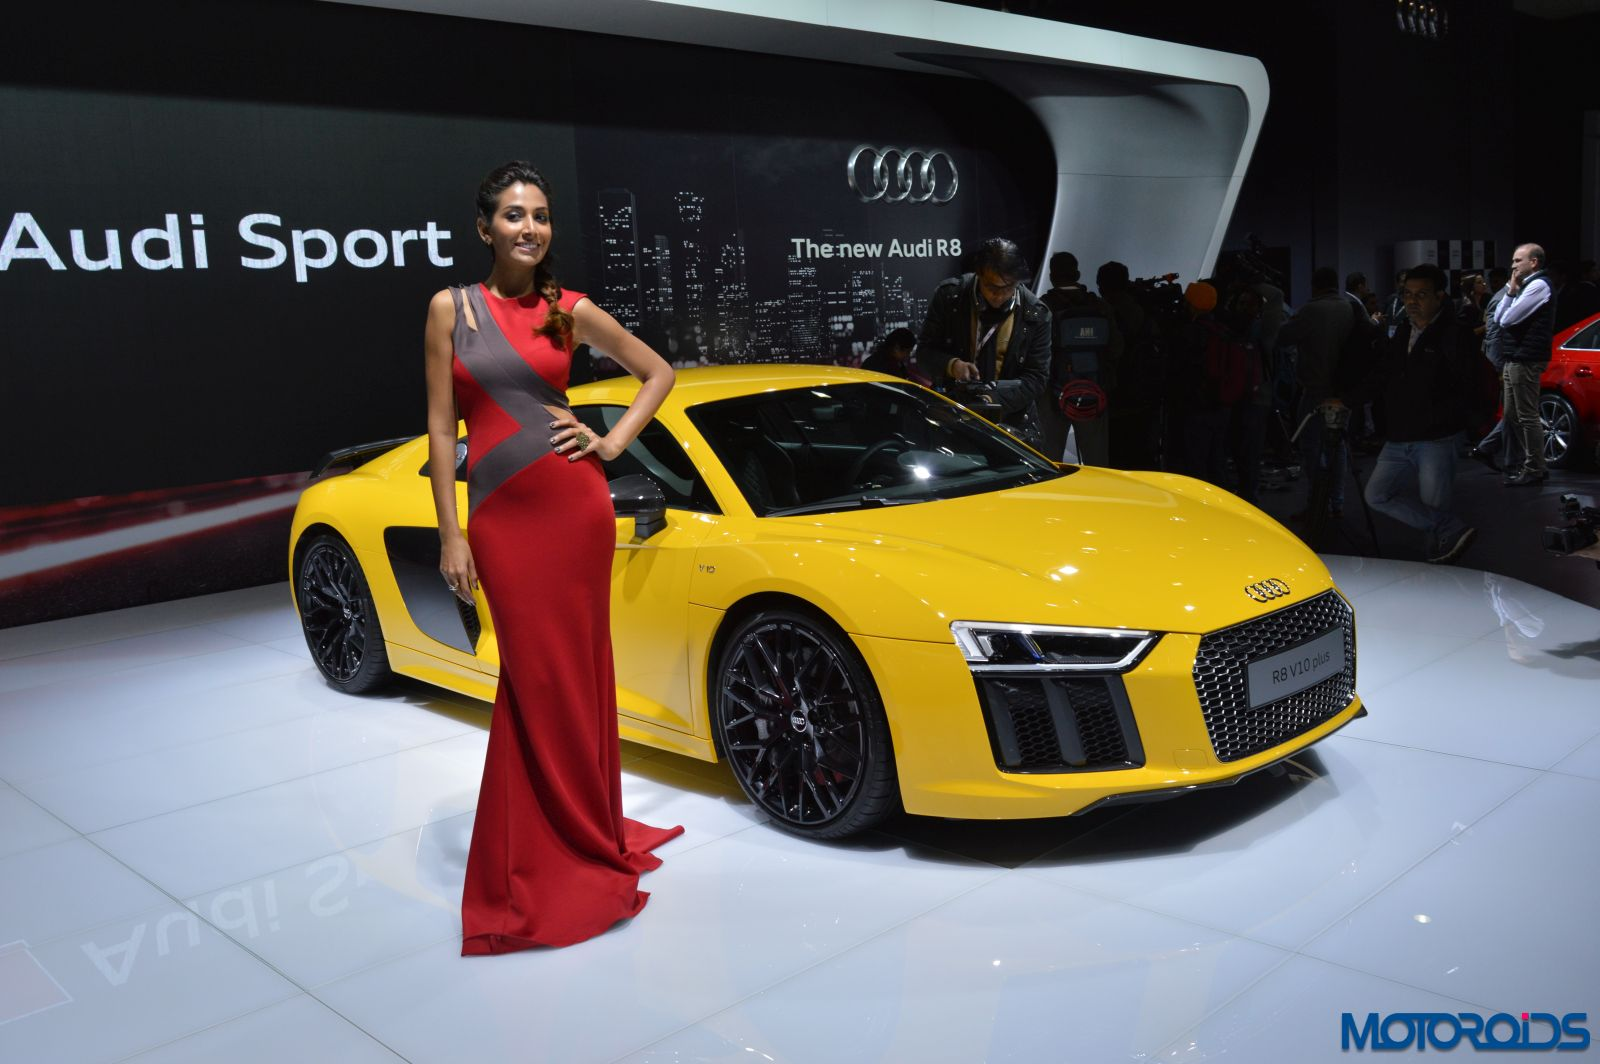 All New Audi R8 V10 Launched In India Prices Start At Inr 2 47